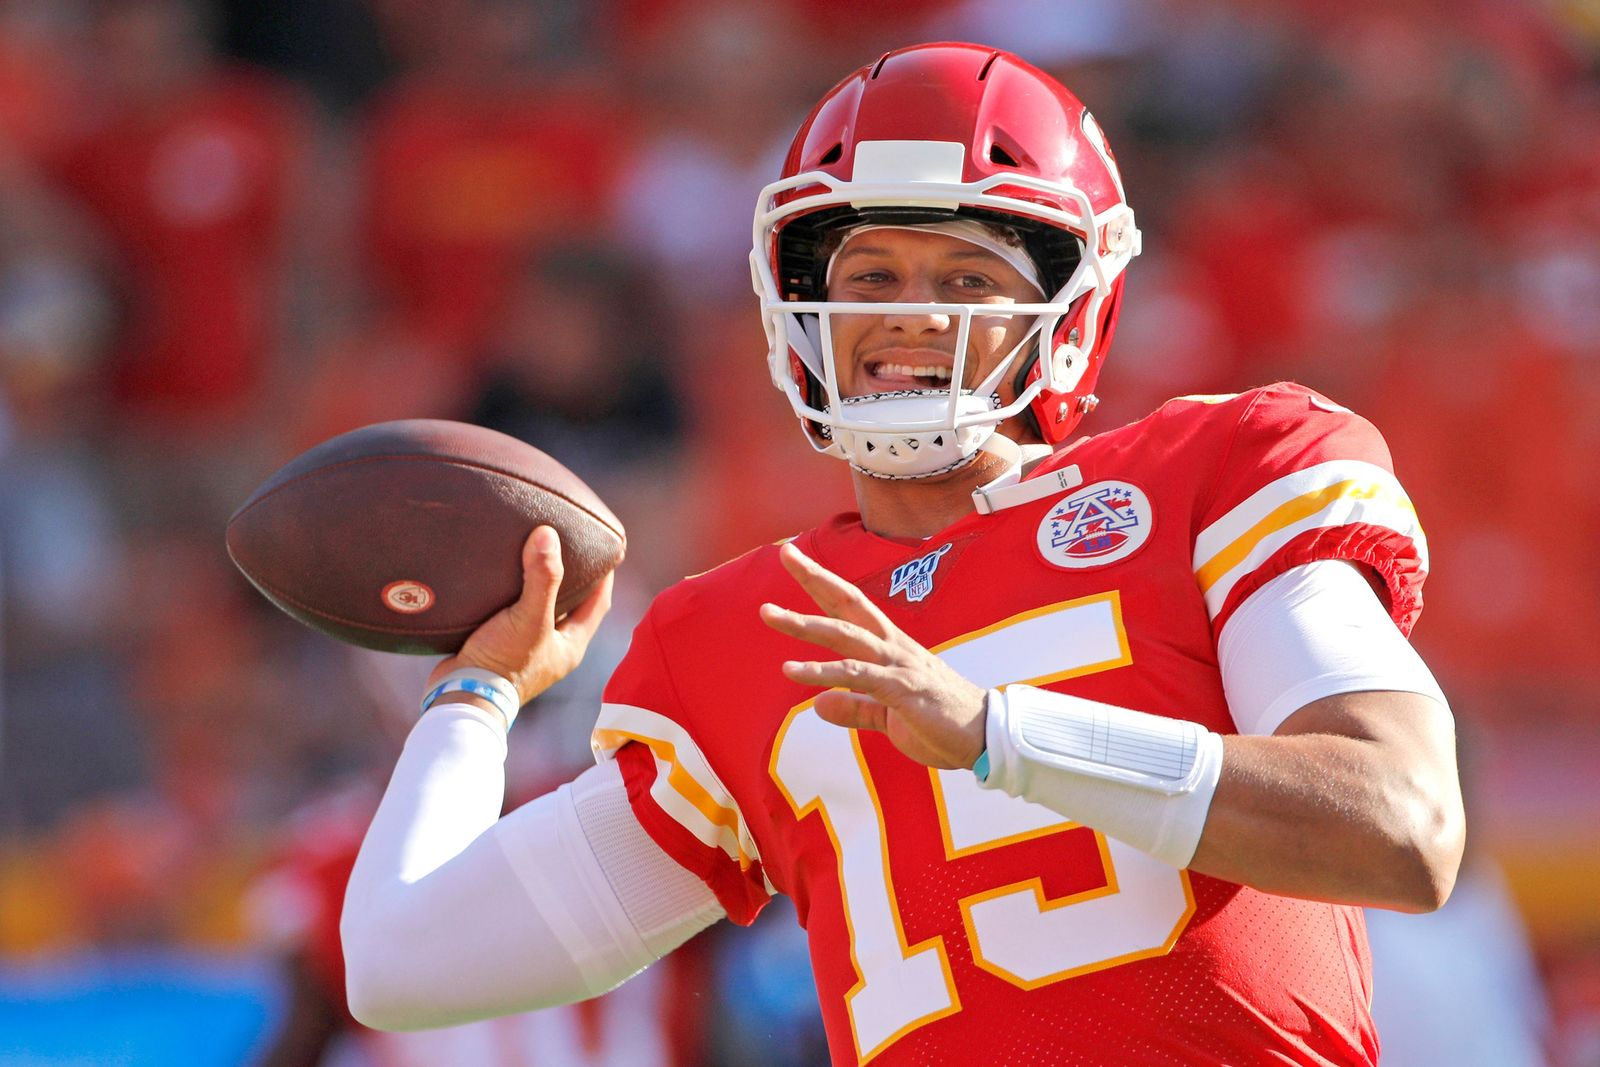 Kansas City Chiefs quarterback Patrick Mahomes warms up before an NFL preseason football game against the Cincinnati Bengals in Kansas City, Mo., Saturday, Aug. 10, 2019. (AP Photo/Colin E. Braley)